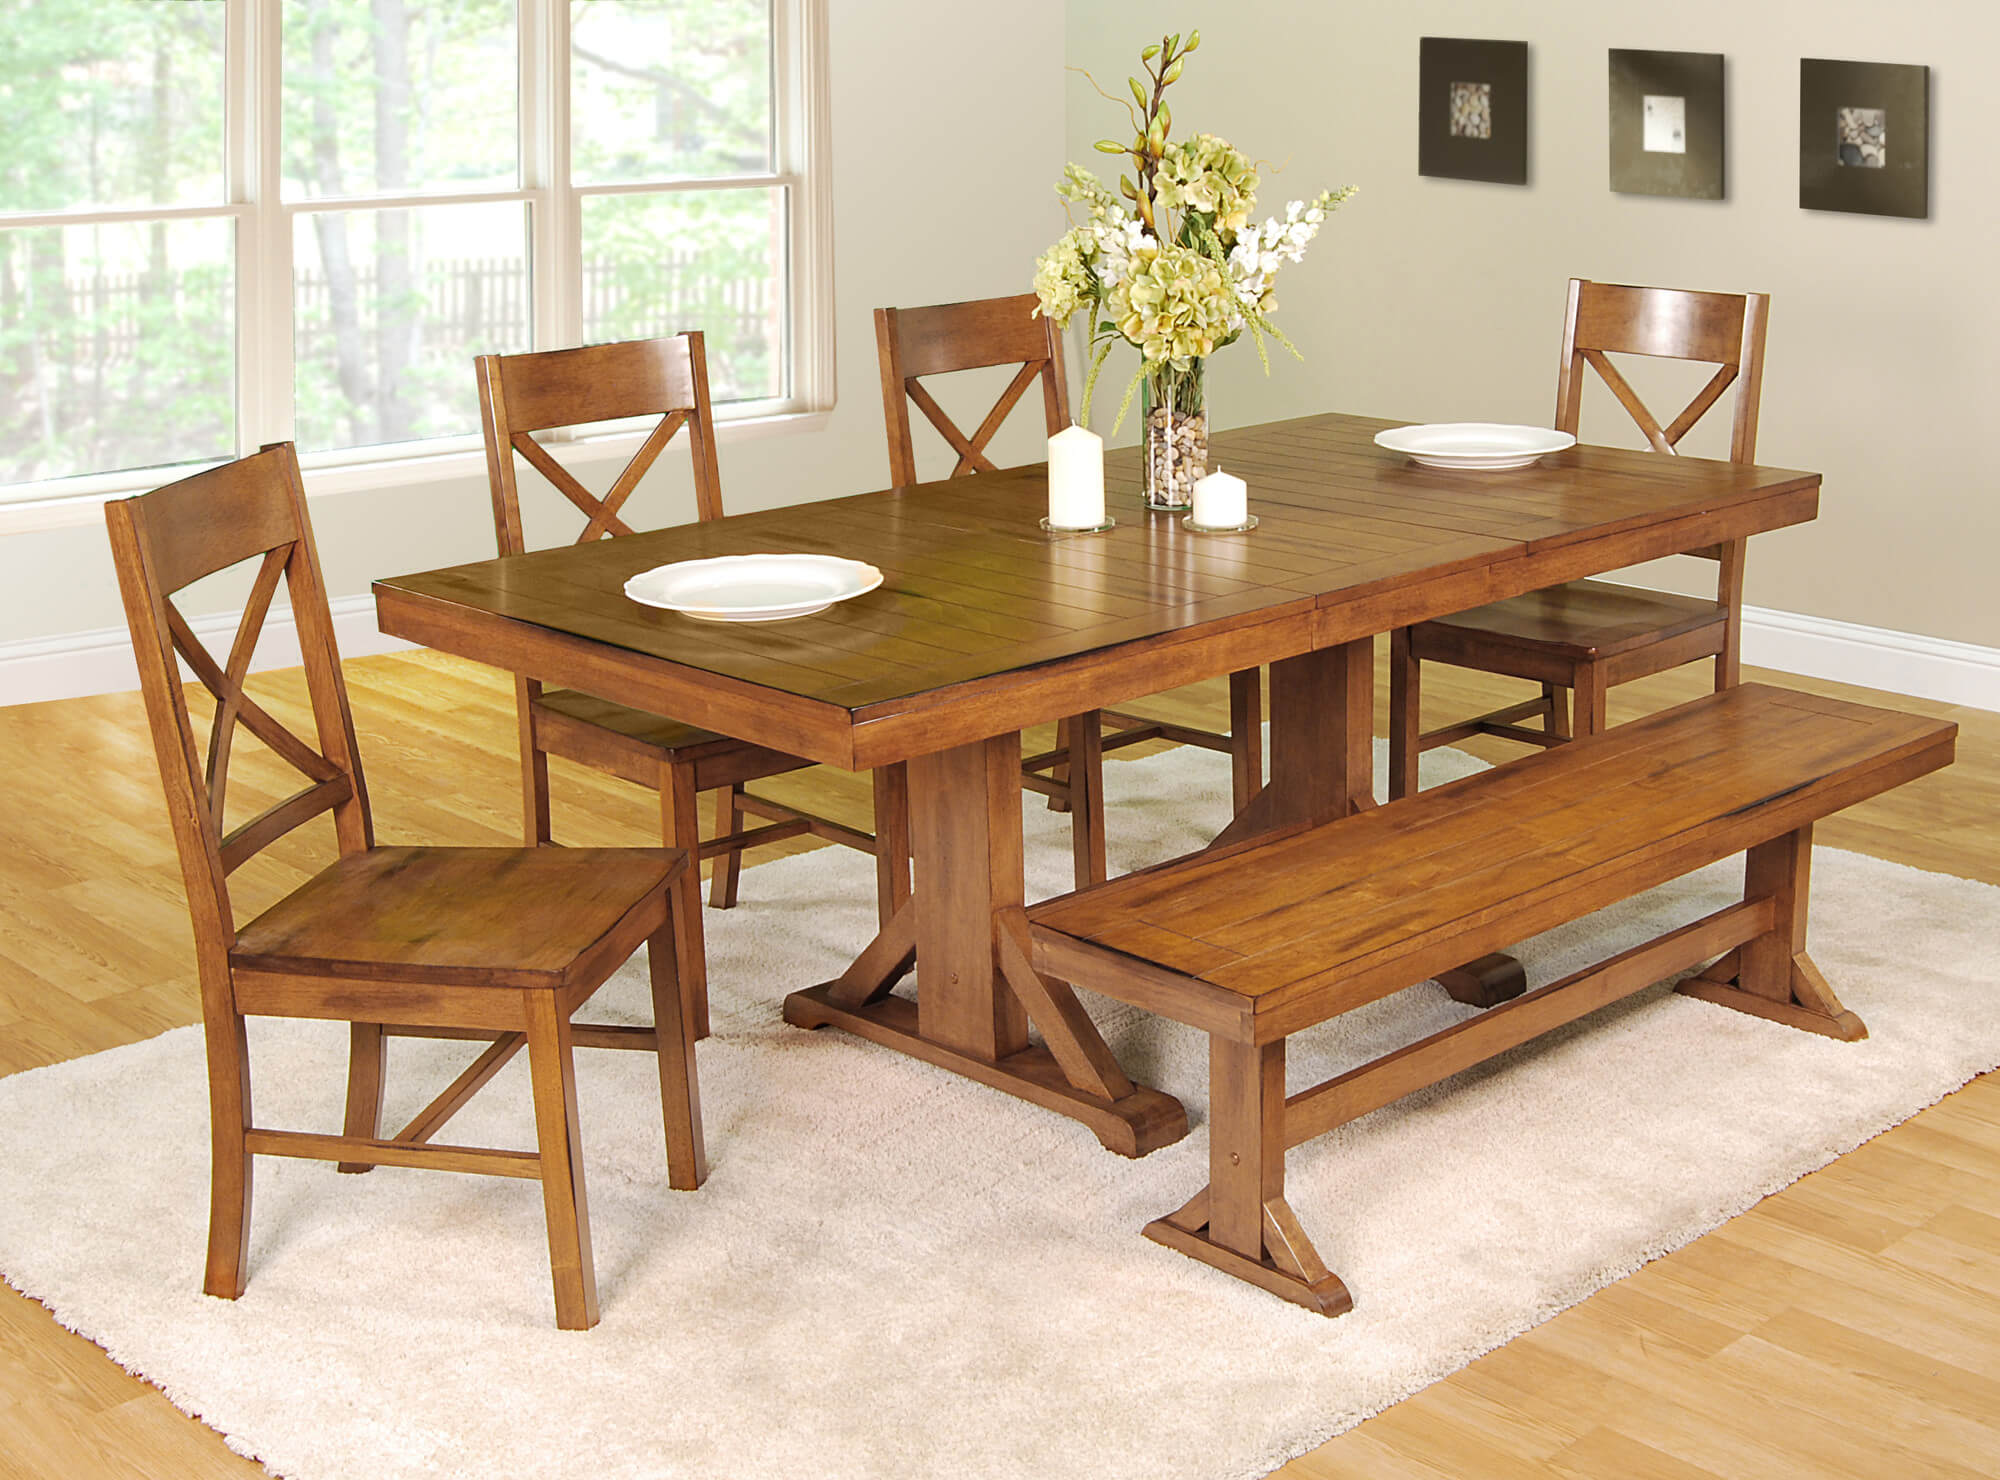 dining room sets bench seating wood kitchen table sets This dining room set with bench is going for the antique look with an antique brown